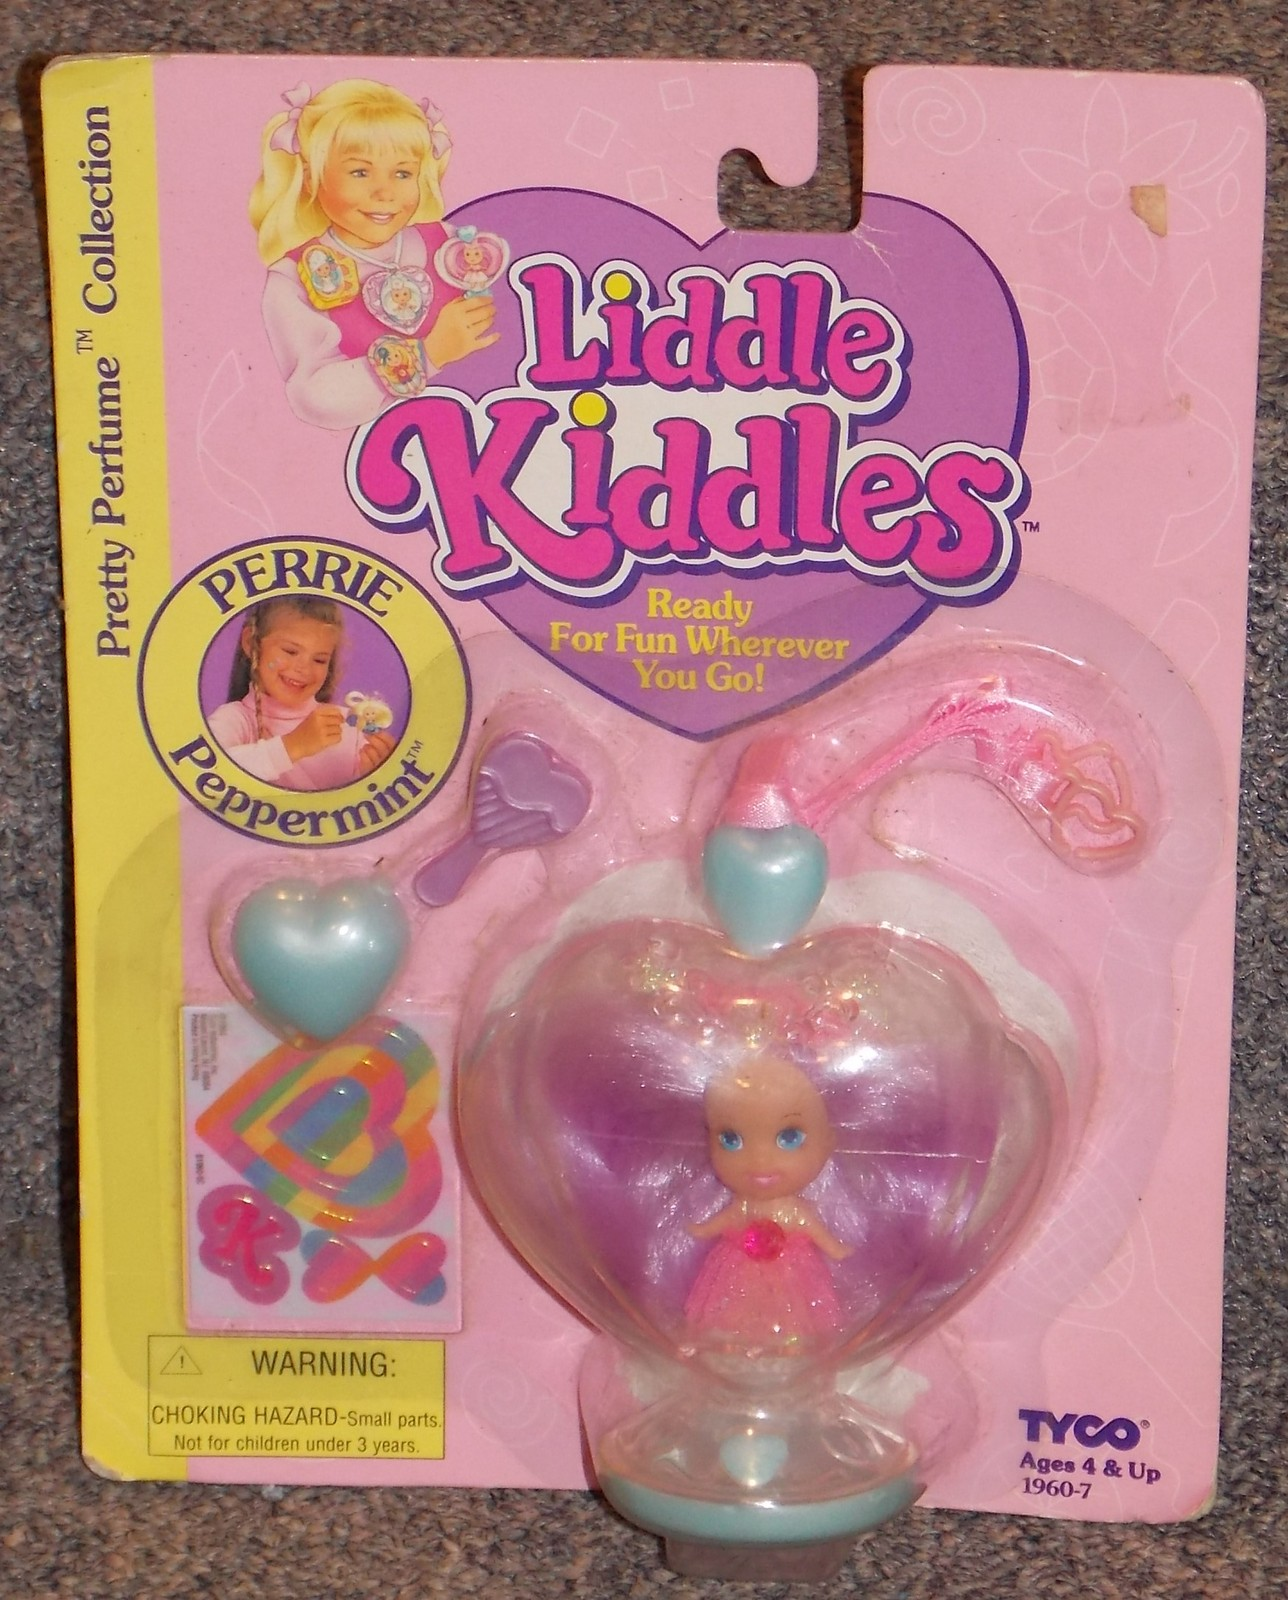 Primary image for 1994 Tyco Liddle Kiddles Perrie Peppermint Perfume Collection New In Package